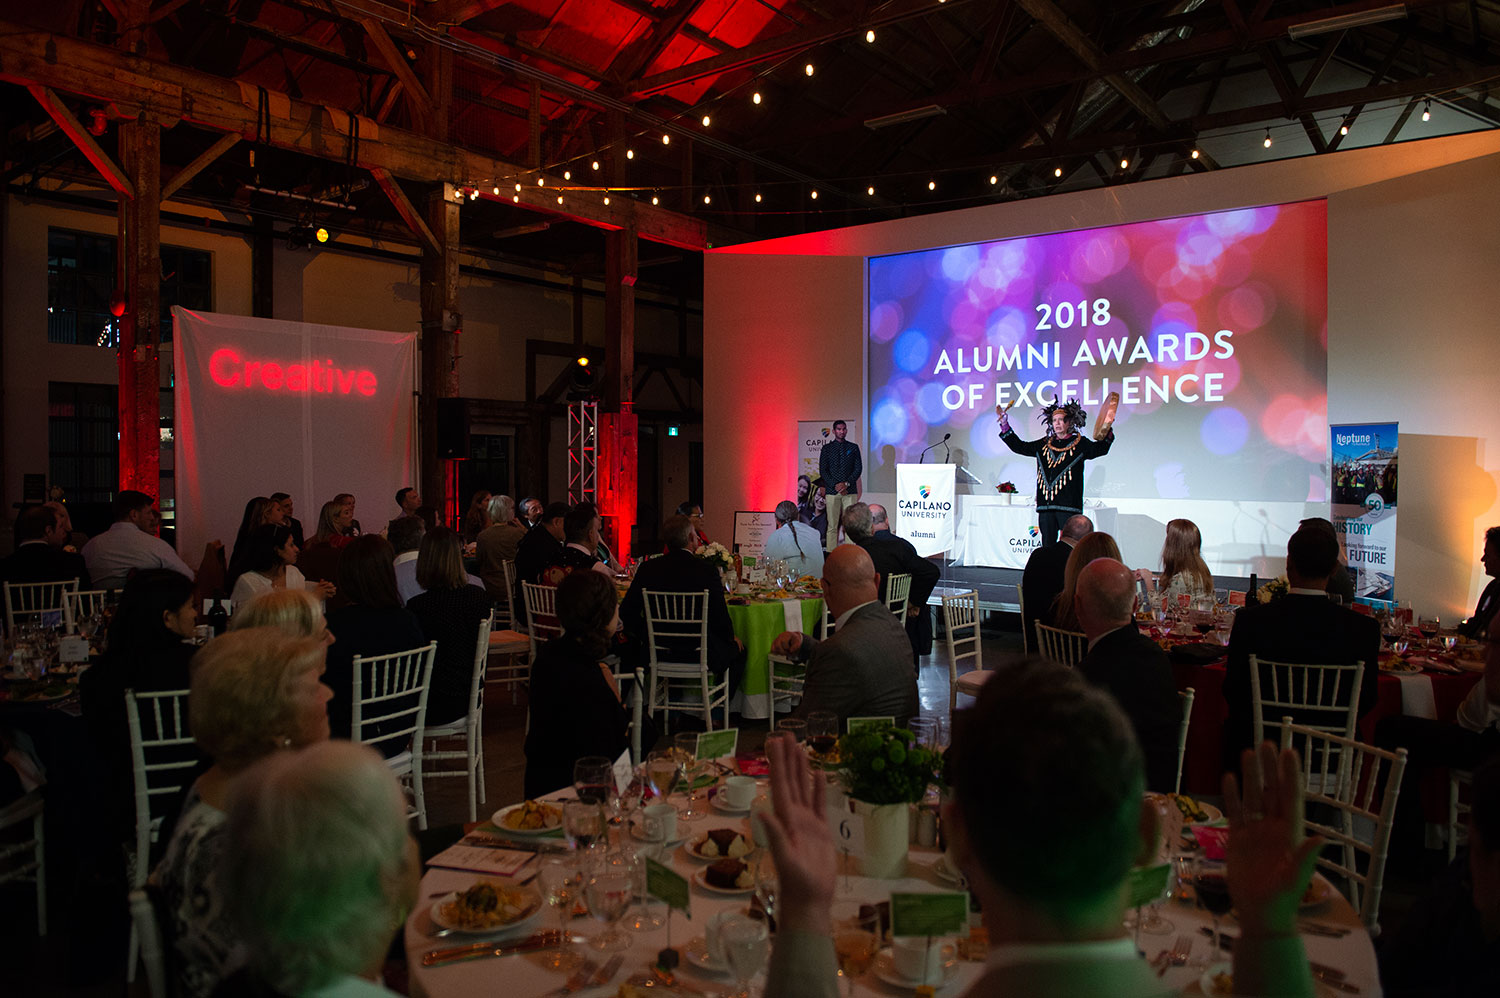 2019 Alumni Awards of Excellence